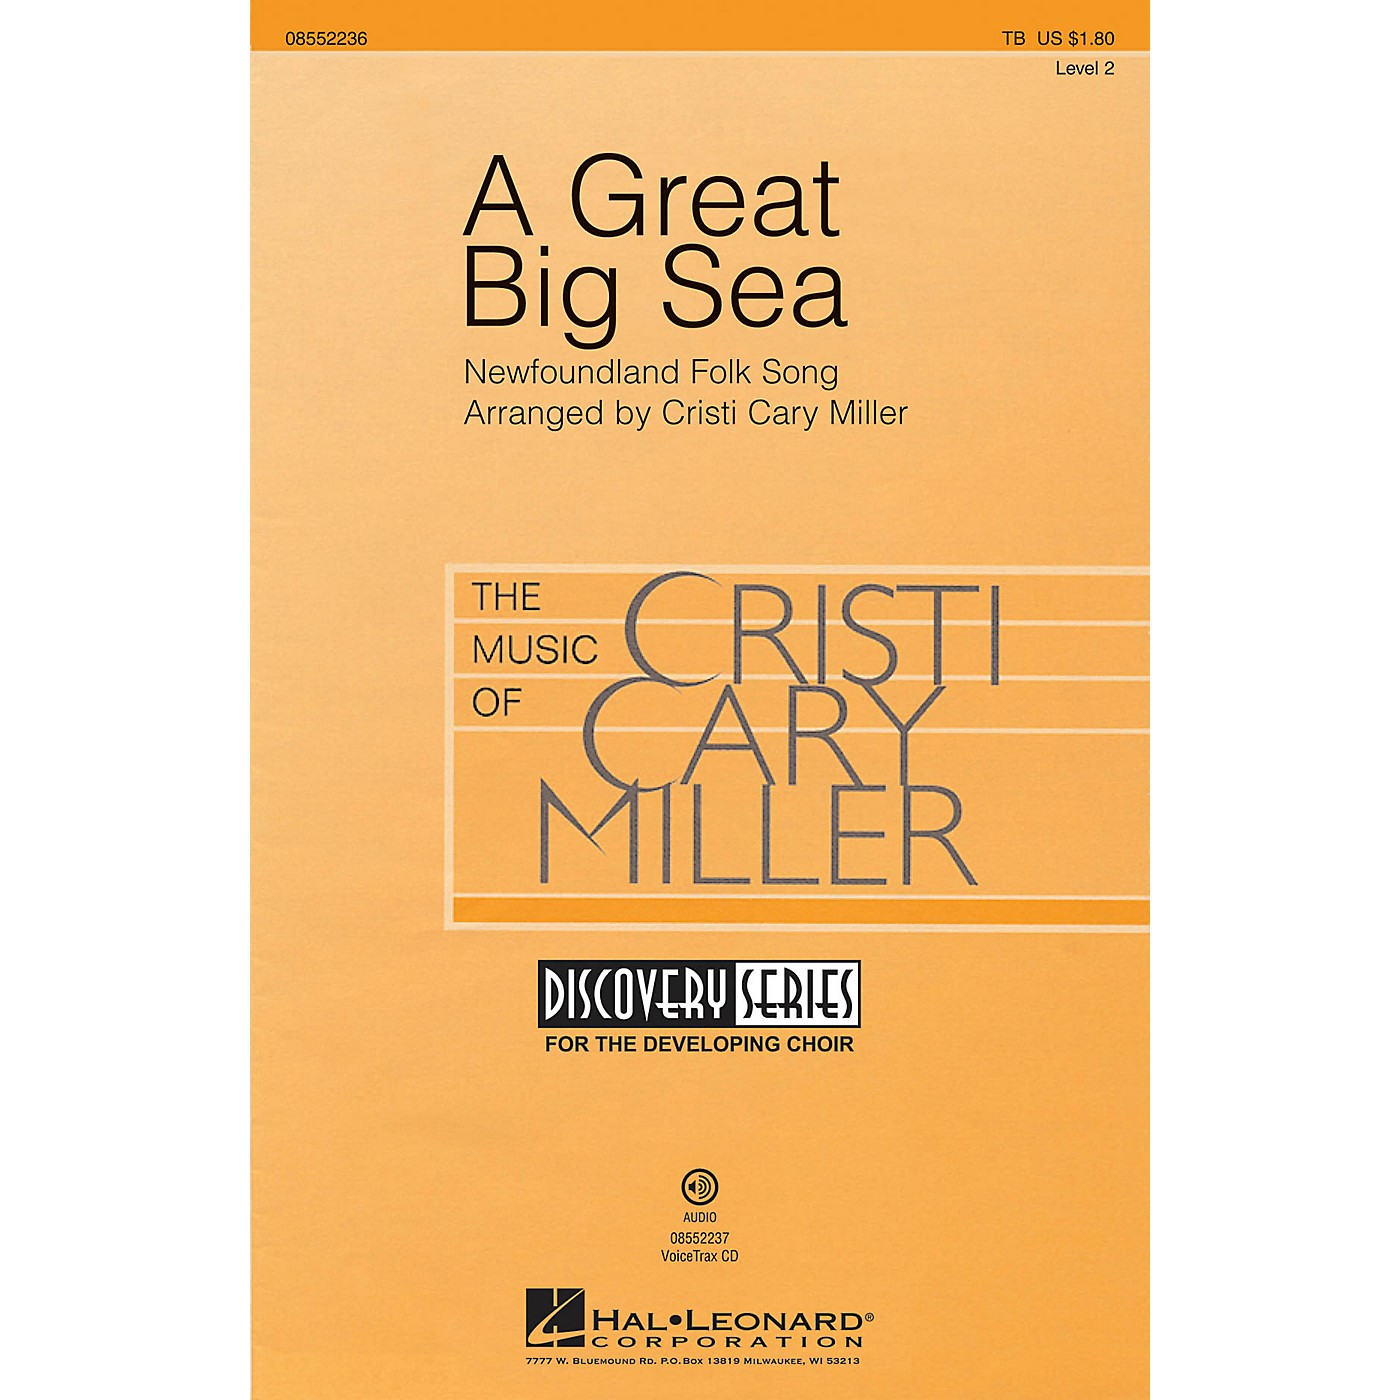 Hal Leonard A Great Big Sea (Discovery Level 1) TB arranged by Cristi Cary Miller thumbnail